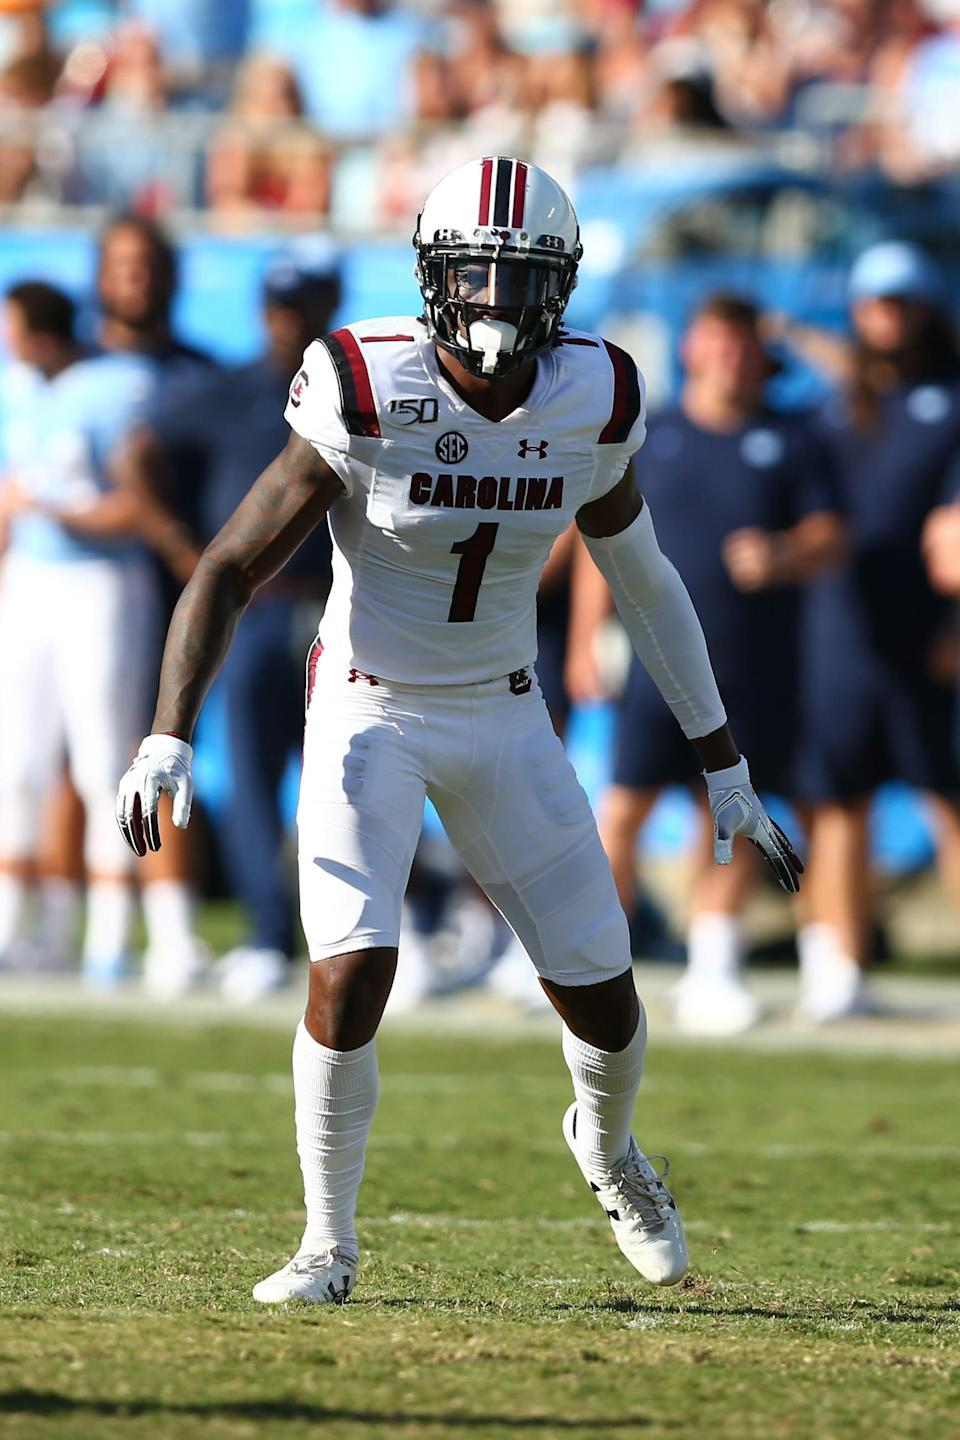 South Carolina defensive back Jaycee Horn